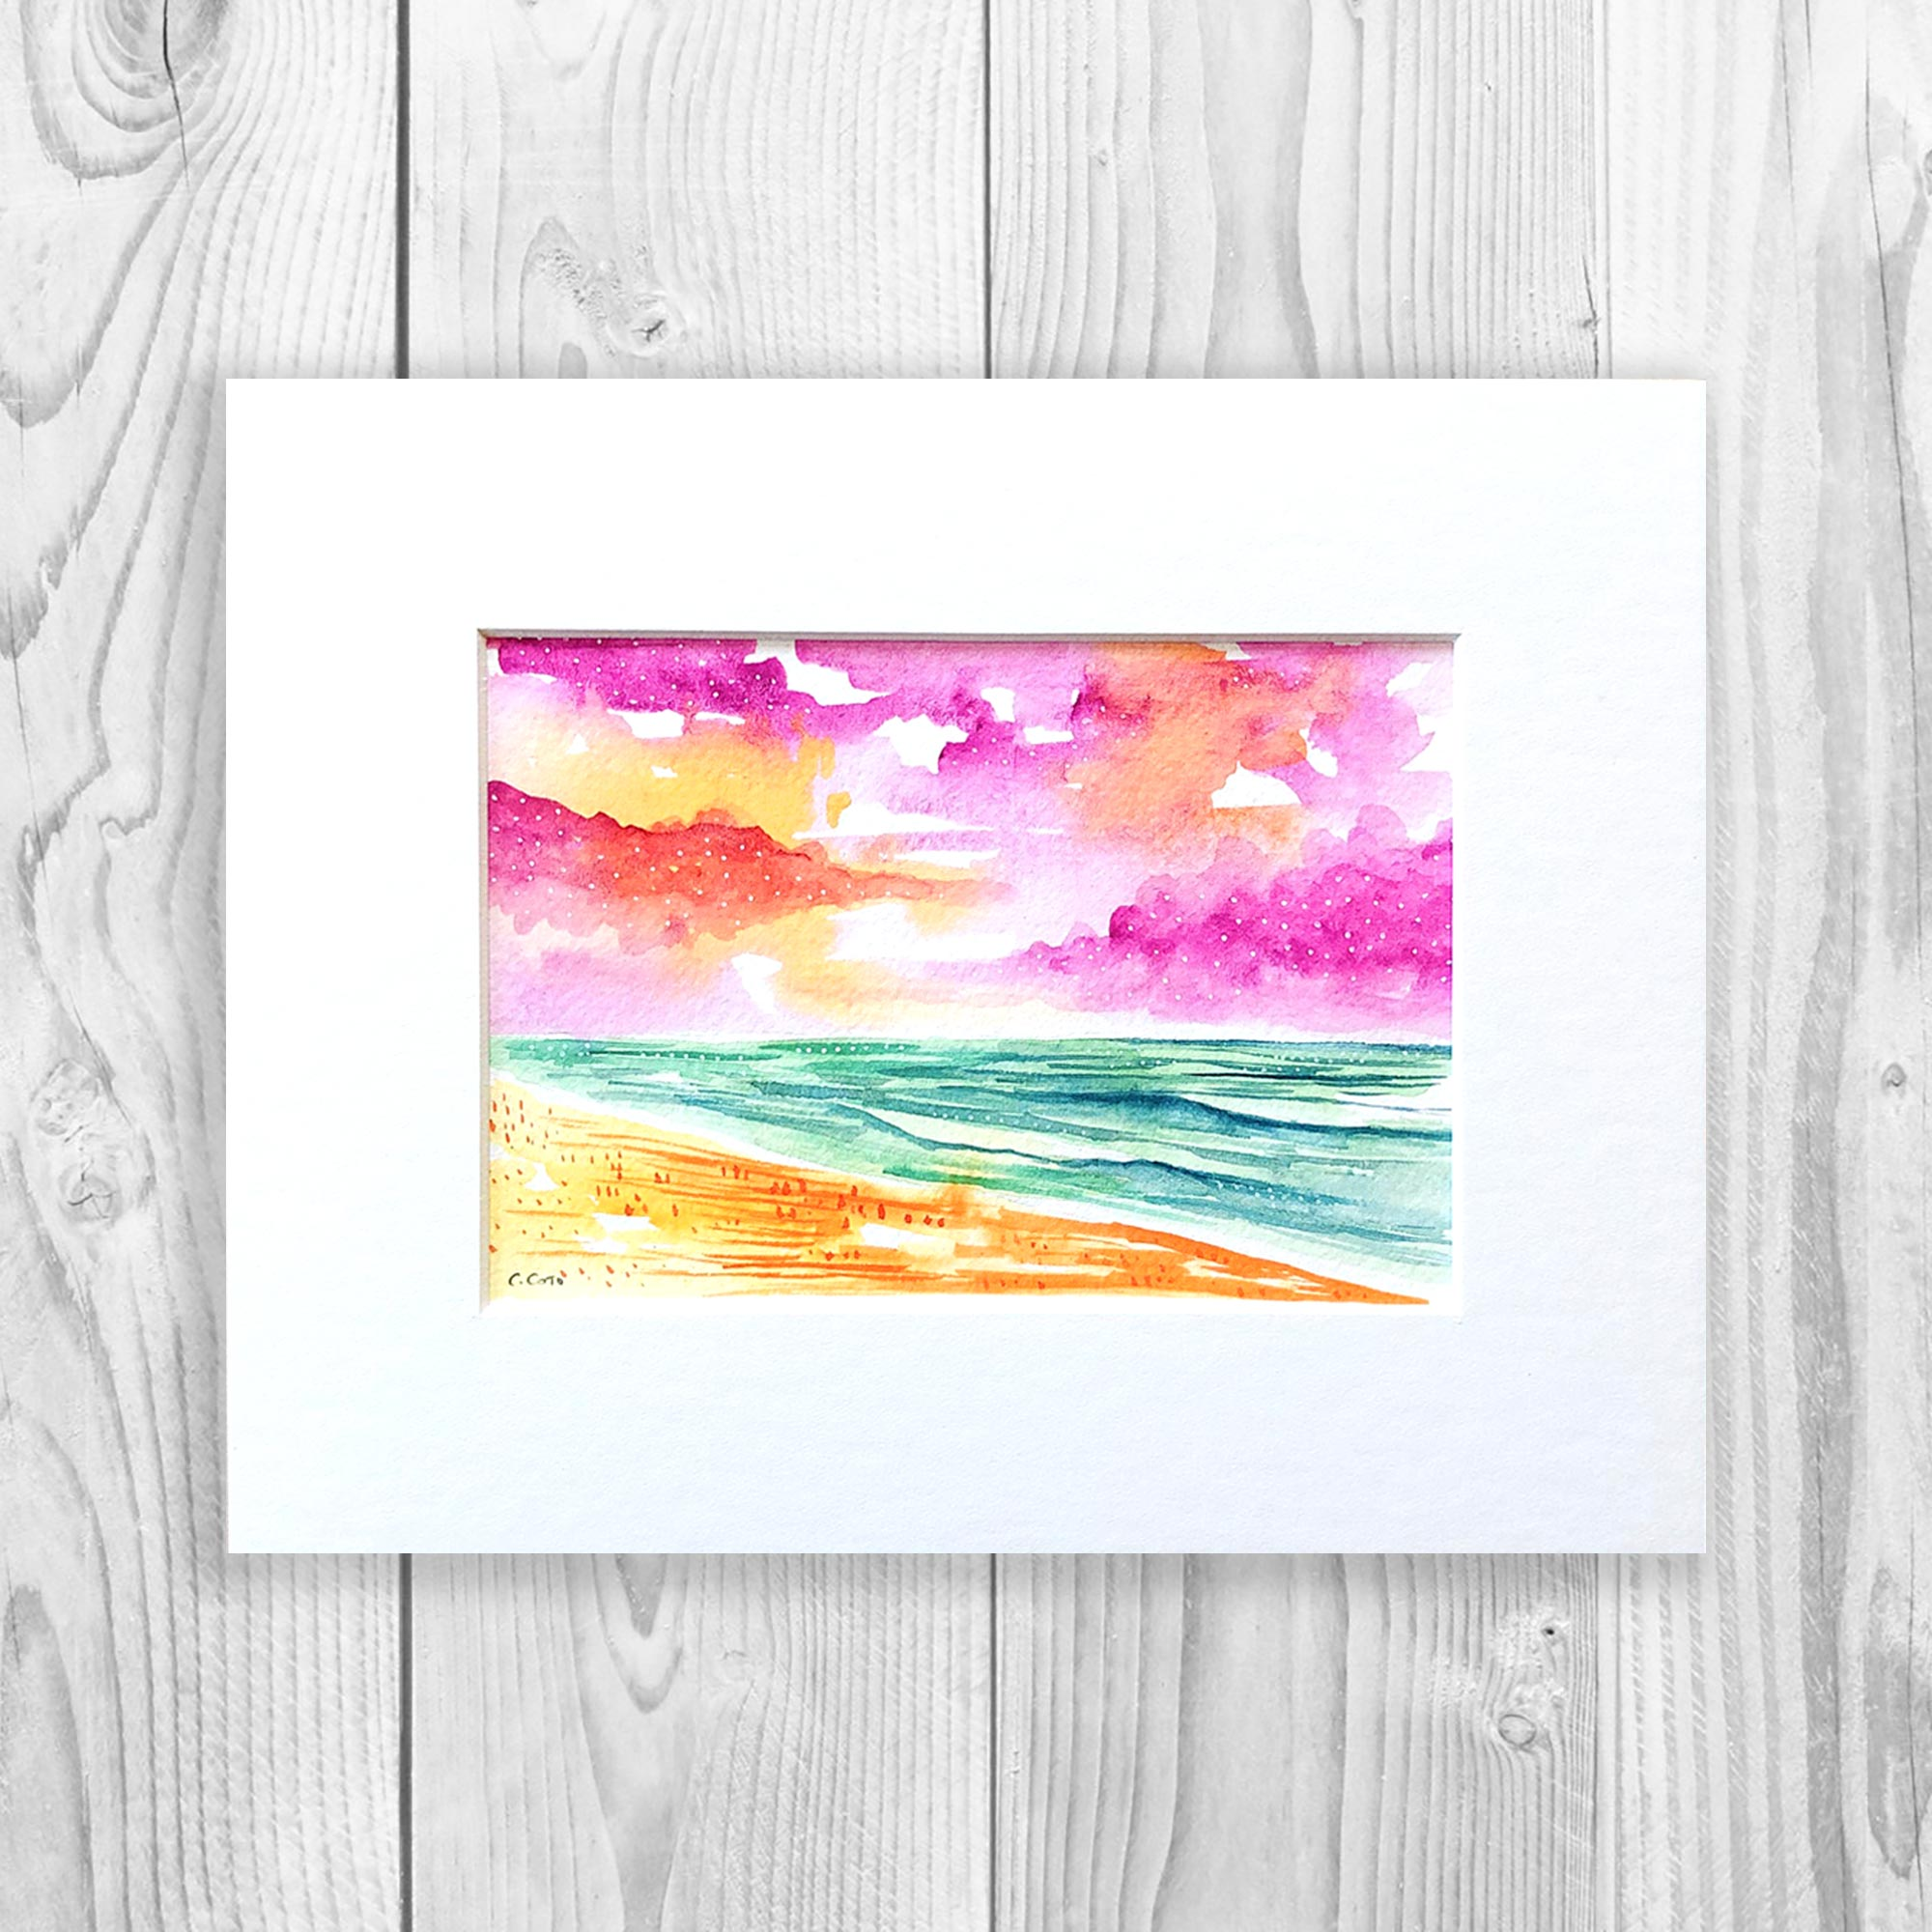 Lively Seascape - Unframed, Matted to Standard Frame Size